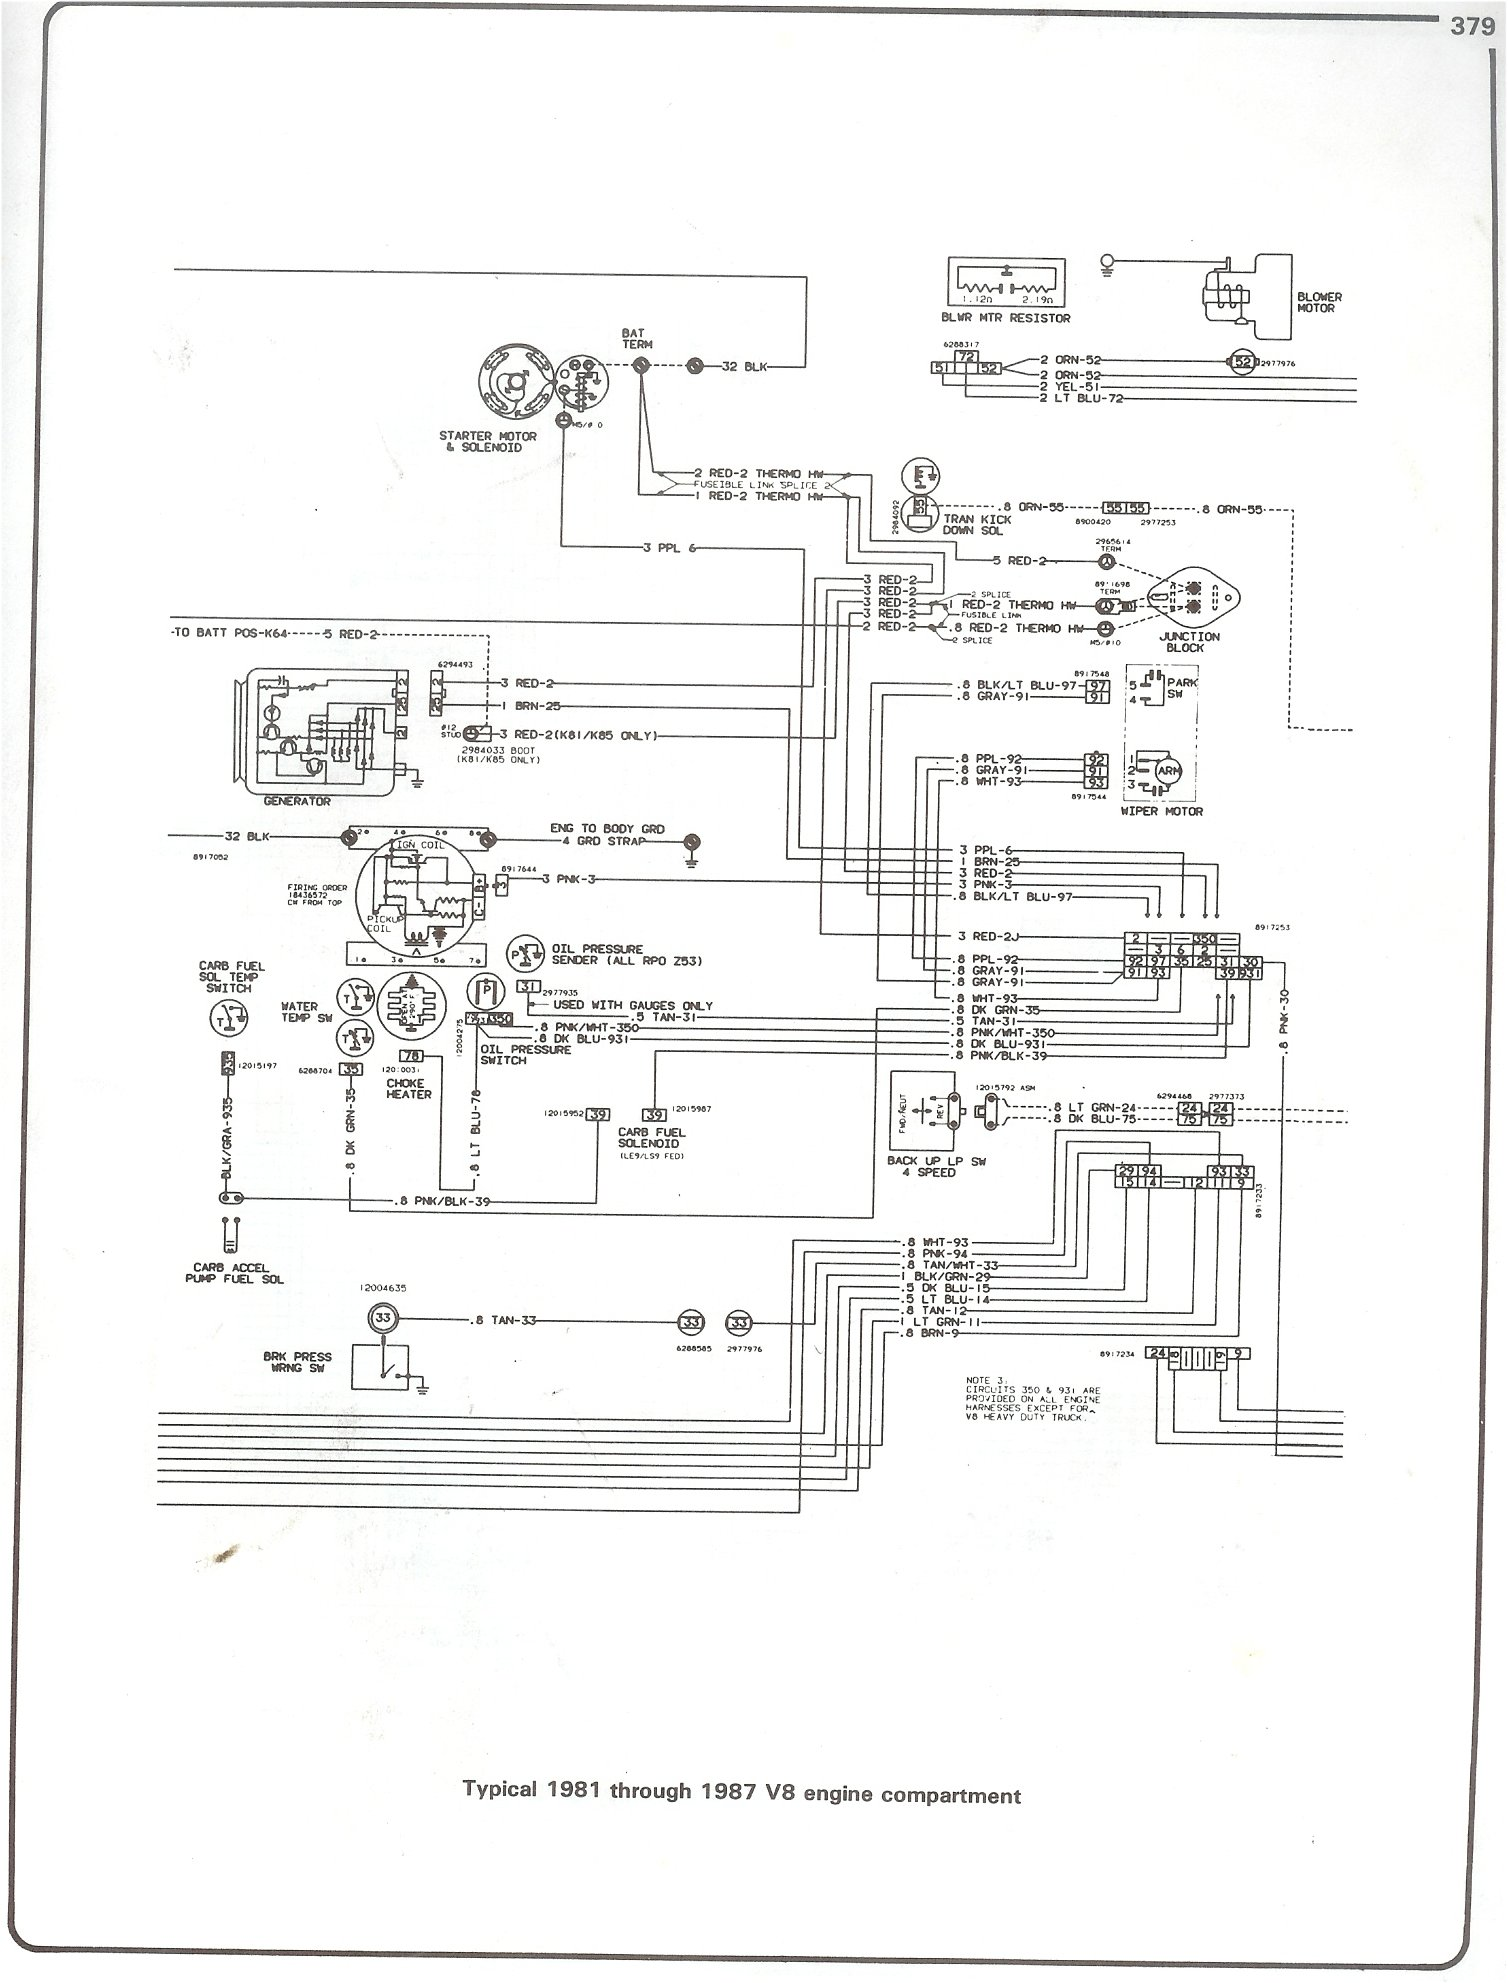 Complete 73 87 Wiring Diagrams 1984 Pontiac Grand Prix Diagram 81 V8 Engine Compartment